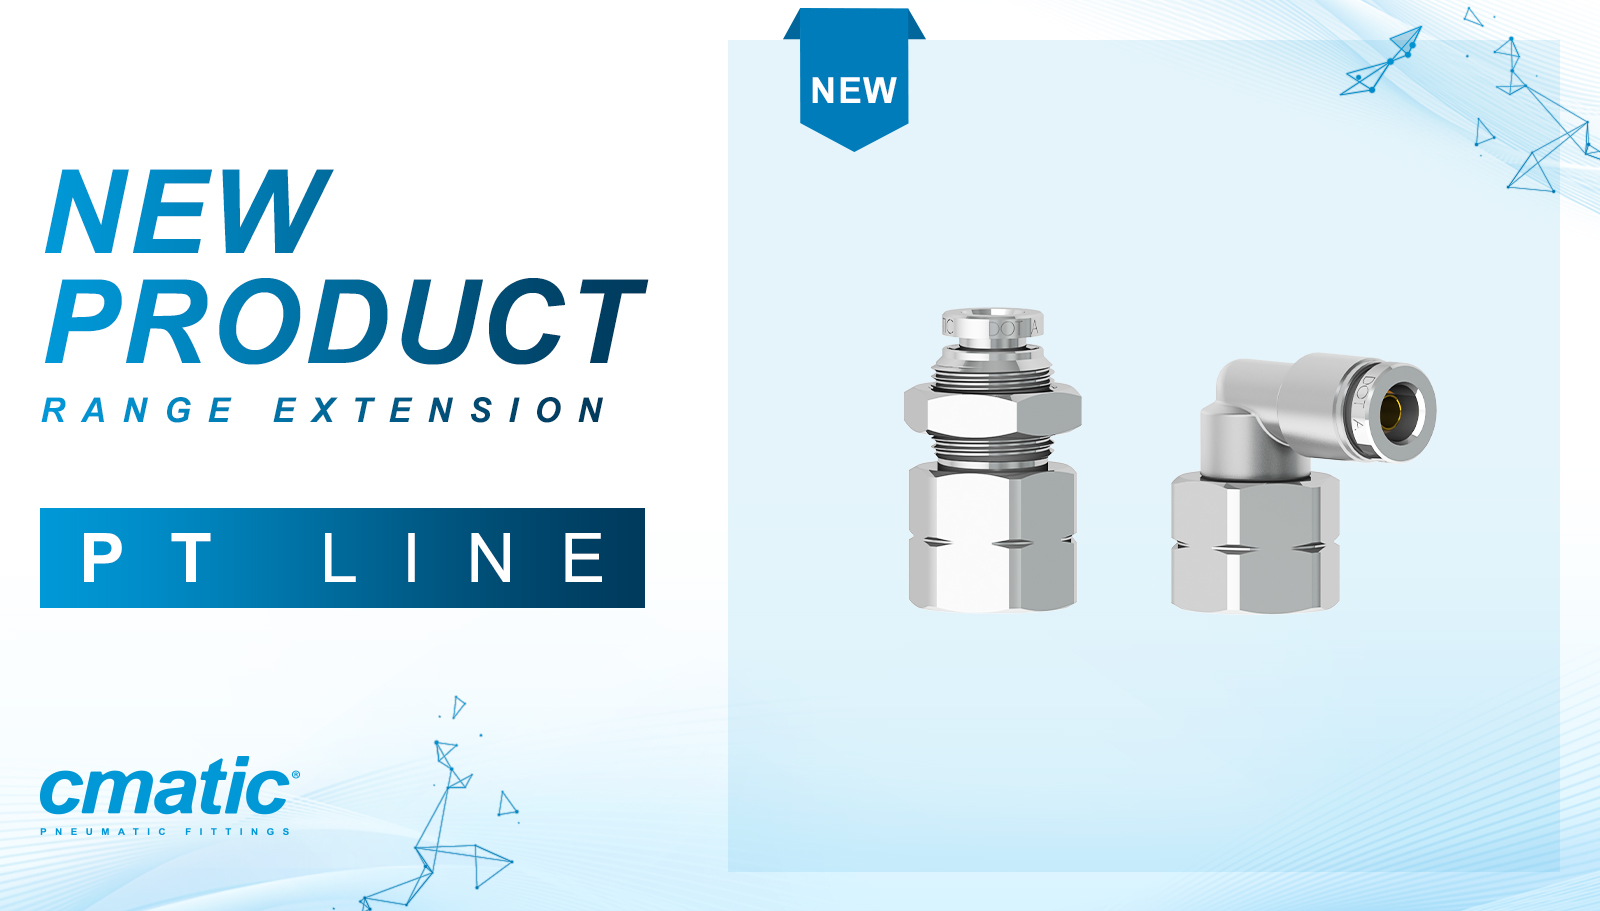 PT Line: new products and sizes are now available